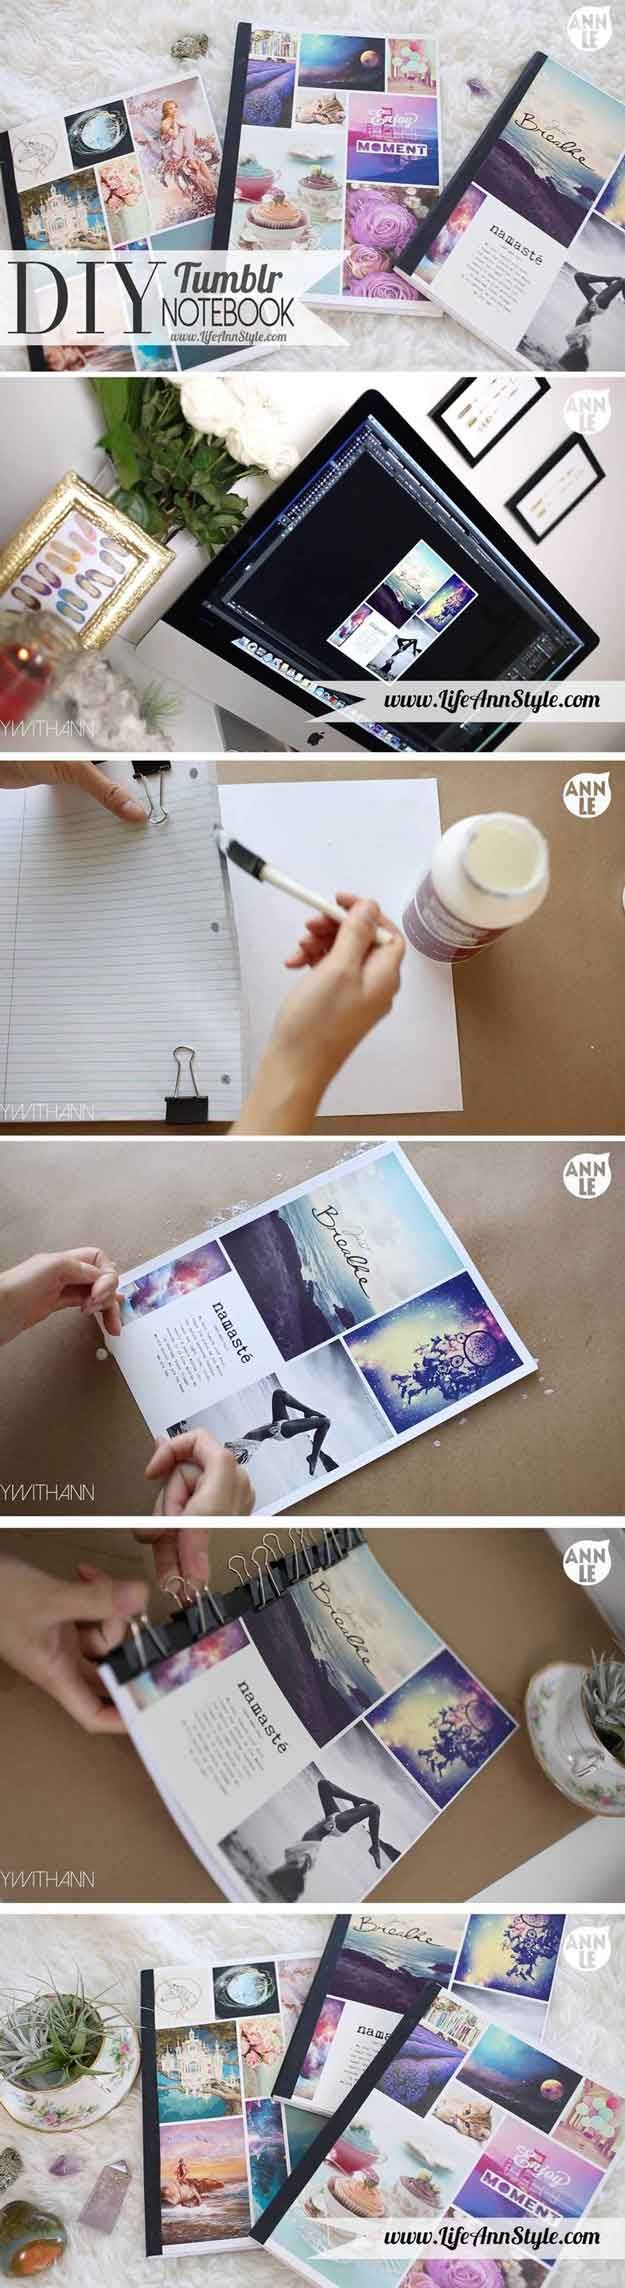 DIY Tumblr Notebook | 27 Easy DIY Projects for Teens Who Love to Craft